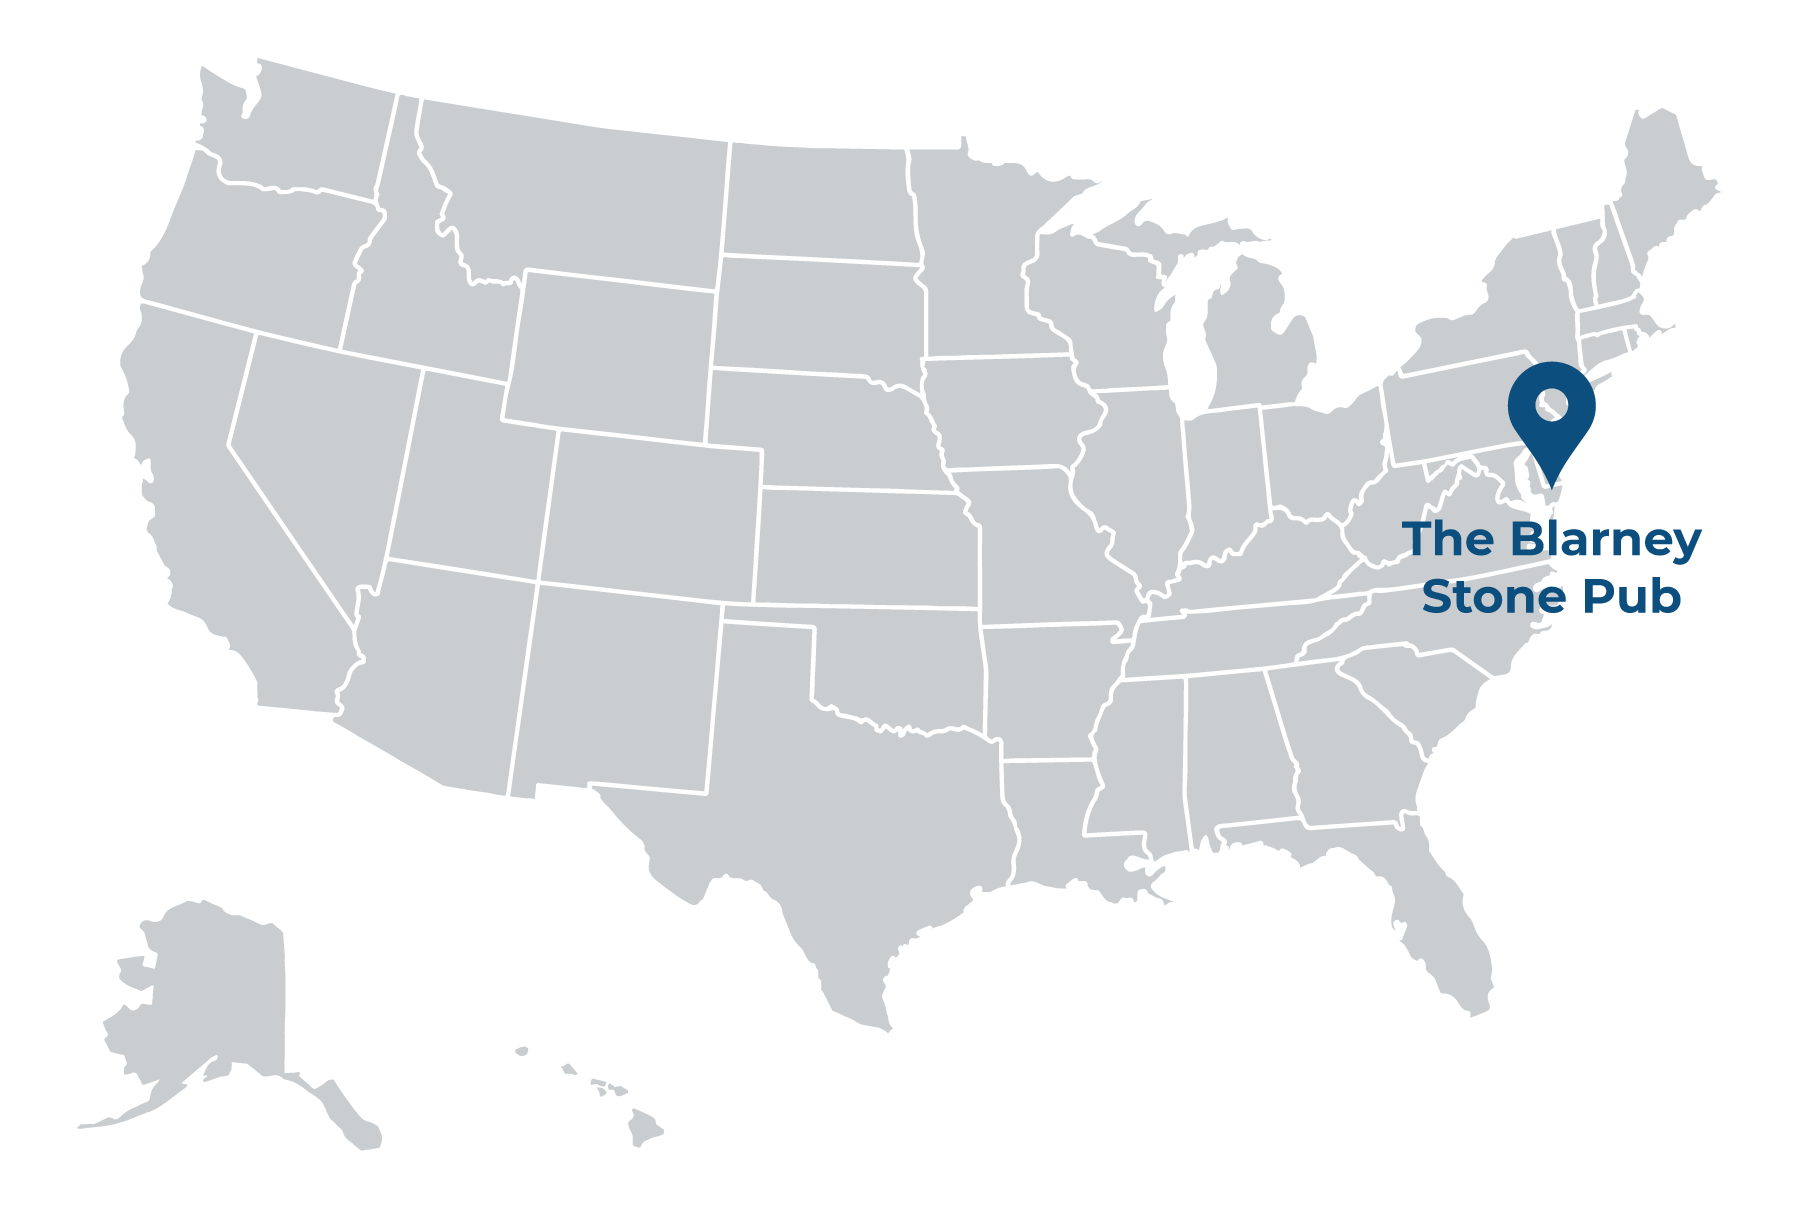 illustrated map of the united states with pin showing location of The Blarney Stone Pub